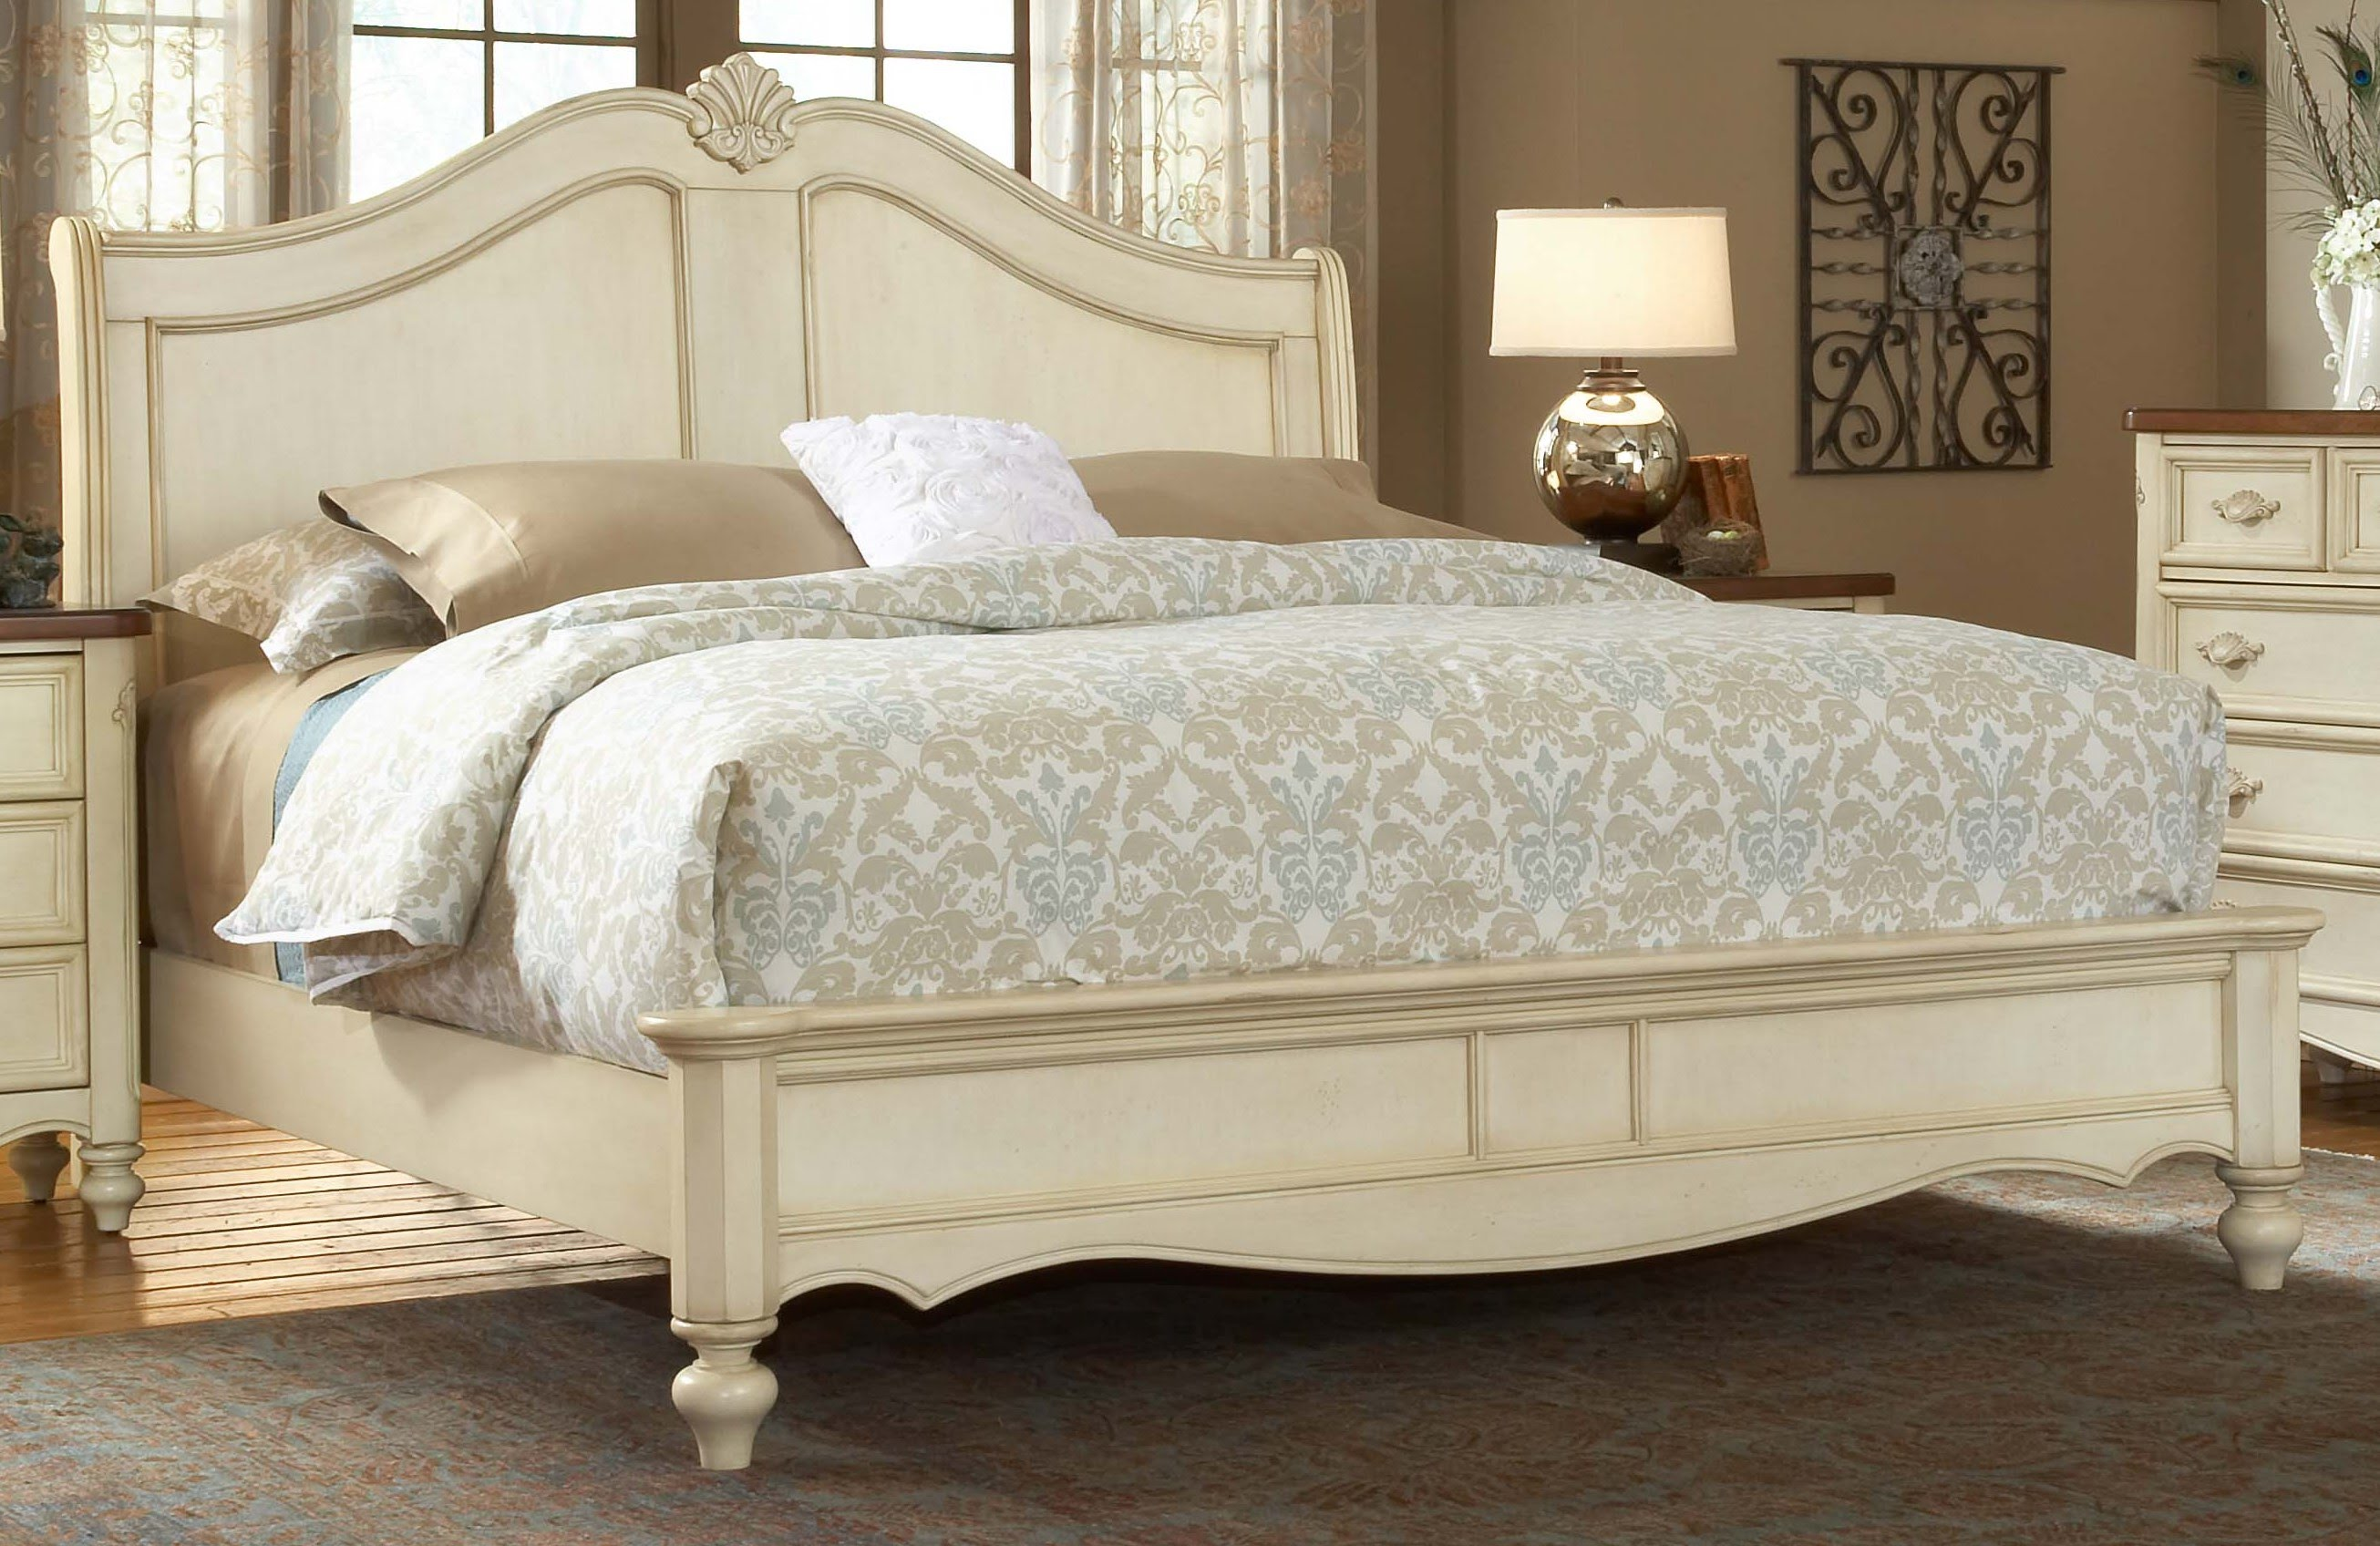 Excellent french country bedroom furniture | french country cottage bedroom furniture  - youtube uujzfcx